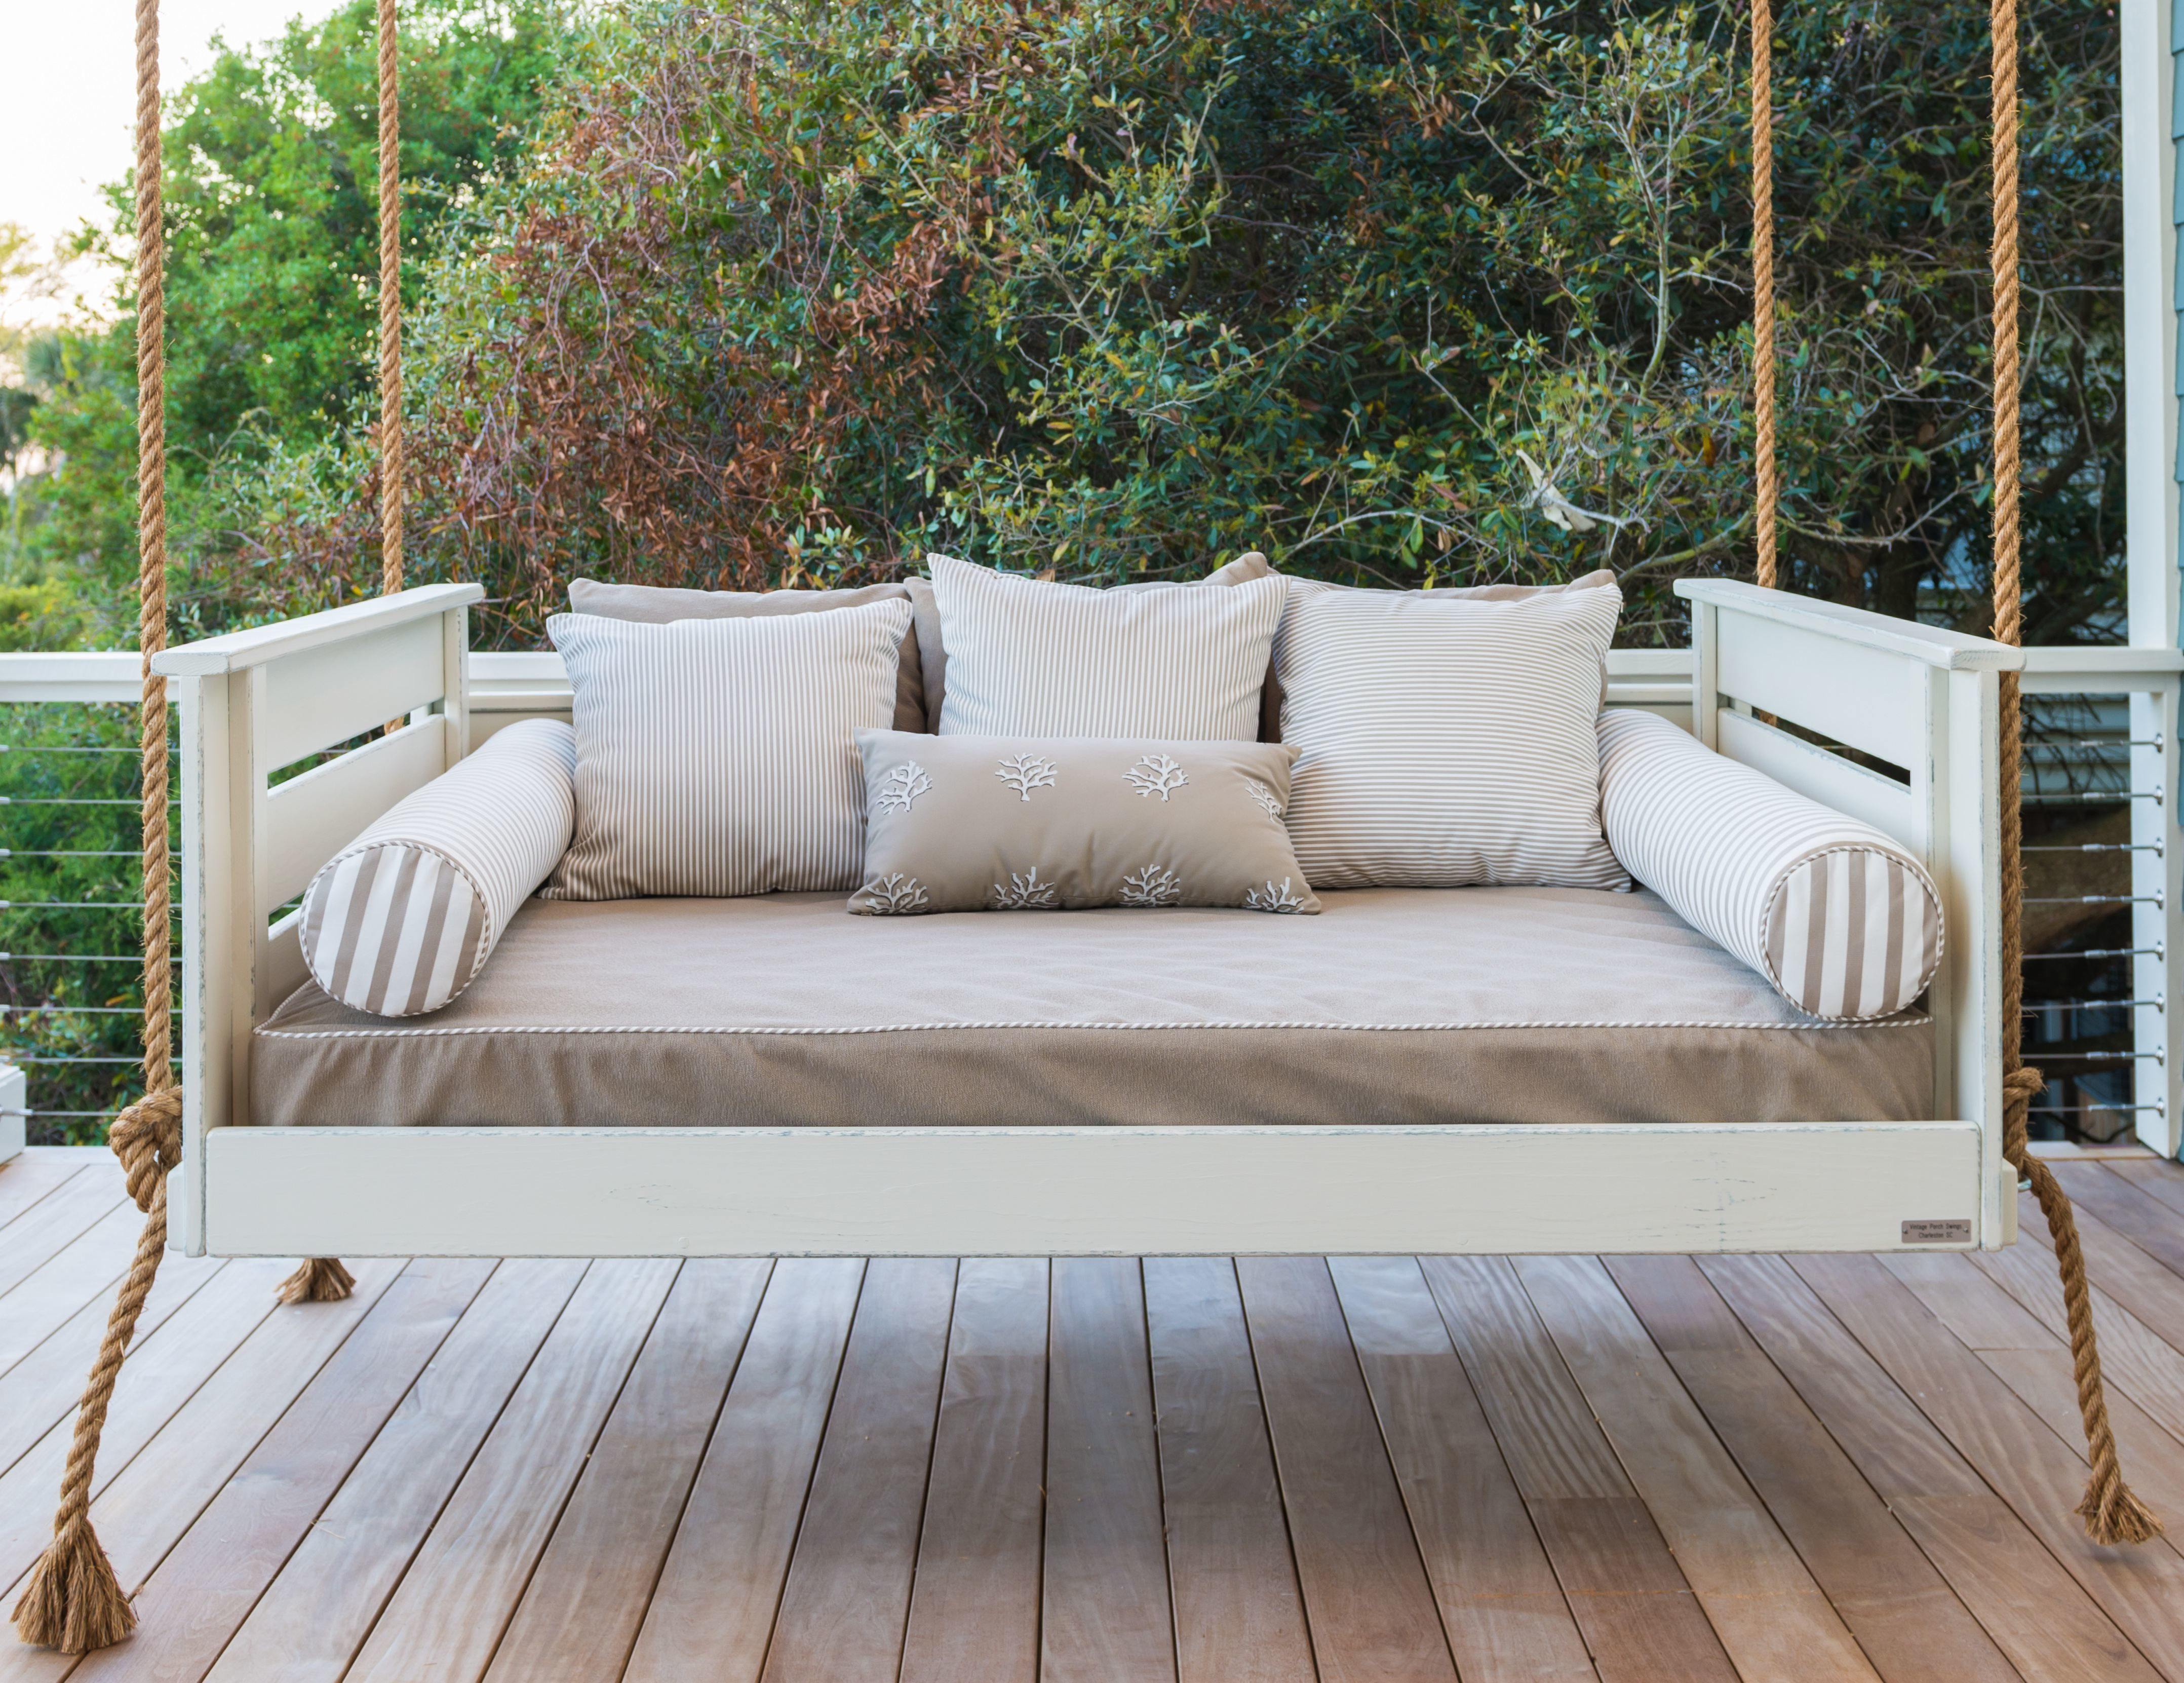 porch swing inspiration for free standing porch swing on porch swing ideas inspiration id=41444